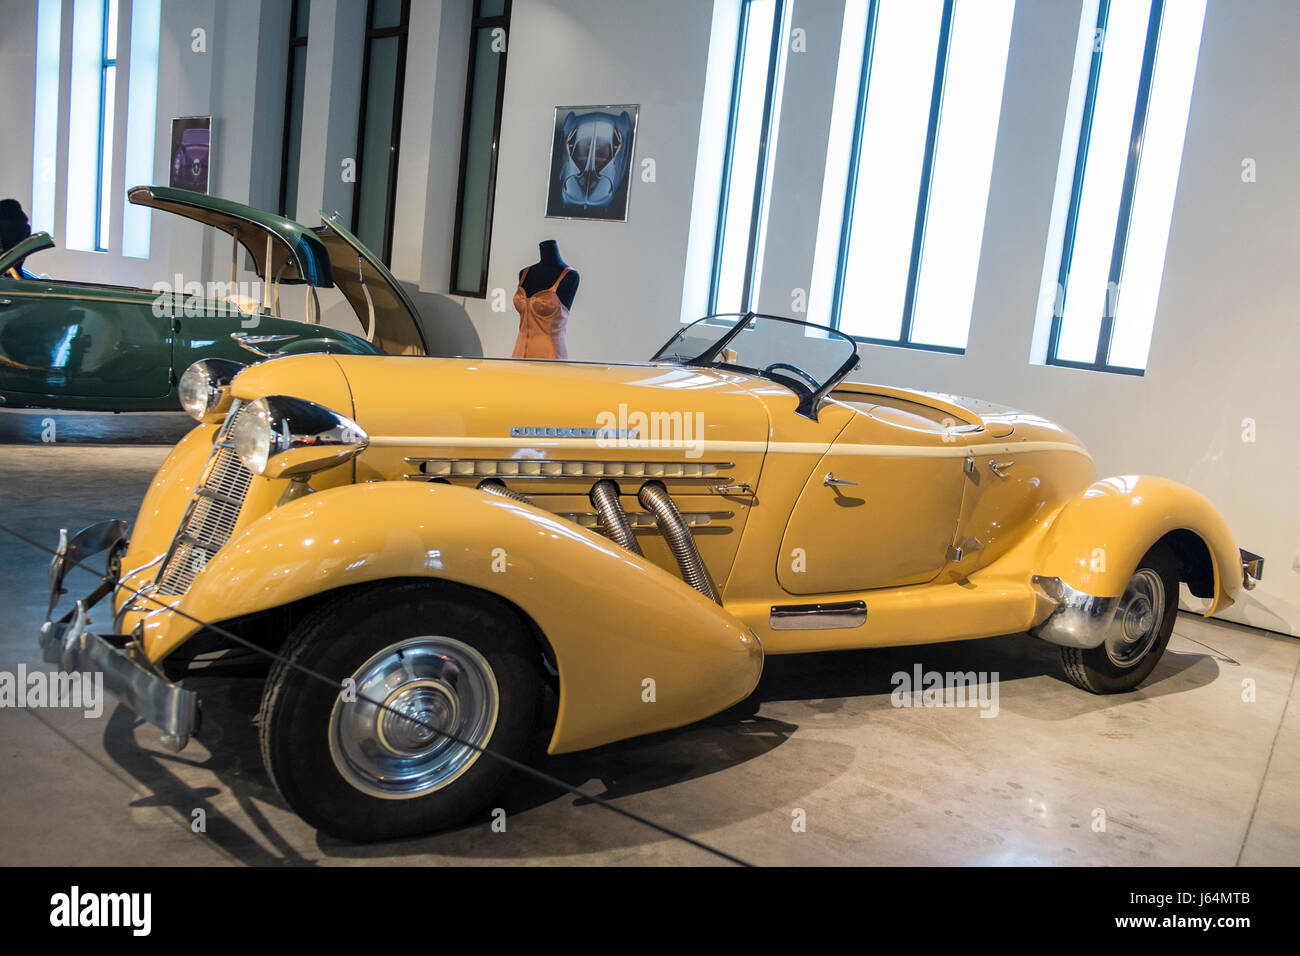 1936 Auburn 852. Automobile museum of Málaga, Andalusia, Spain. - Stock Image